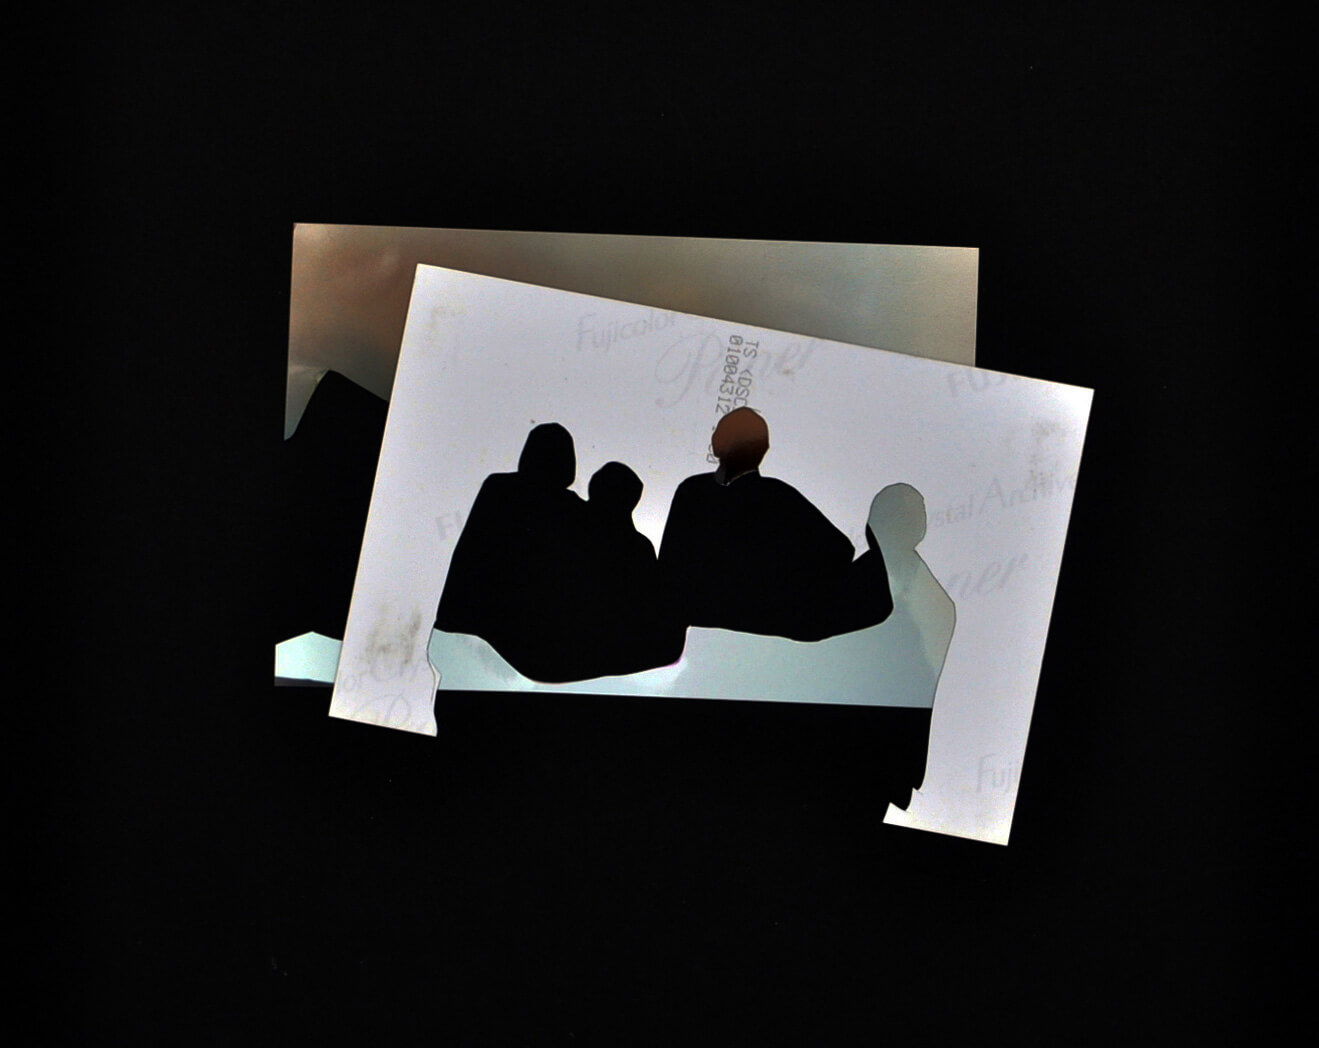 My Parents and Us, 2010, photo collage on a card sheet, 29 x 29 cm